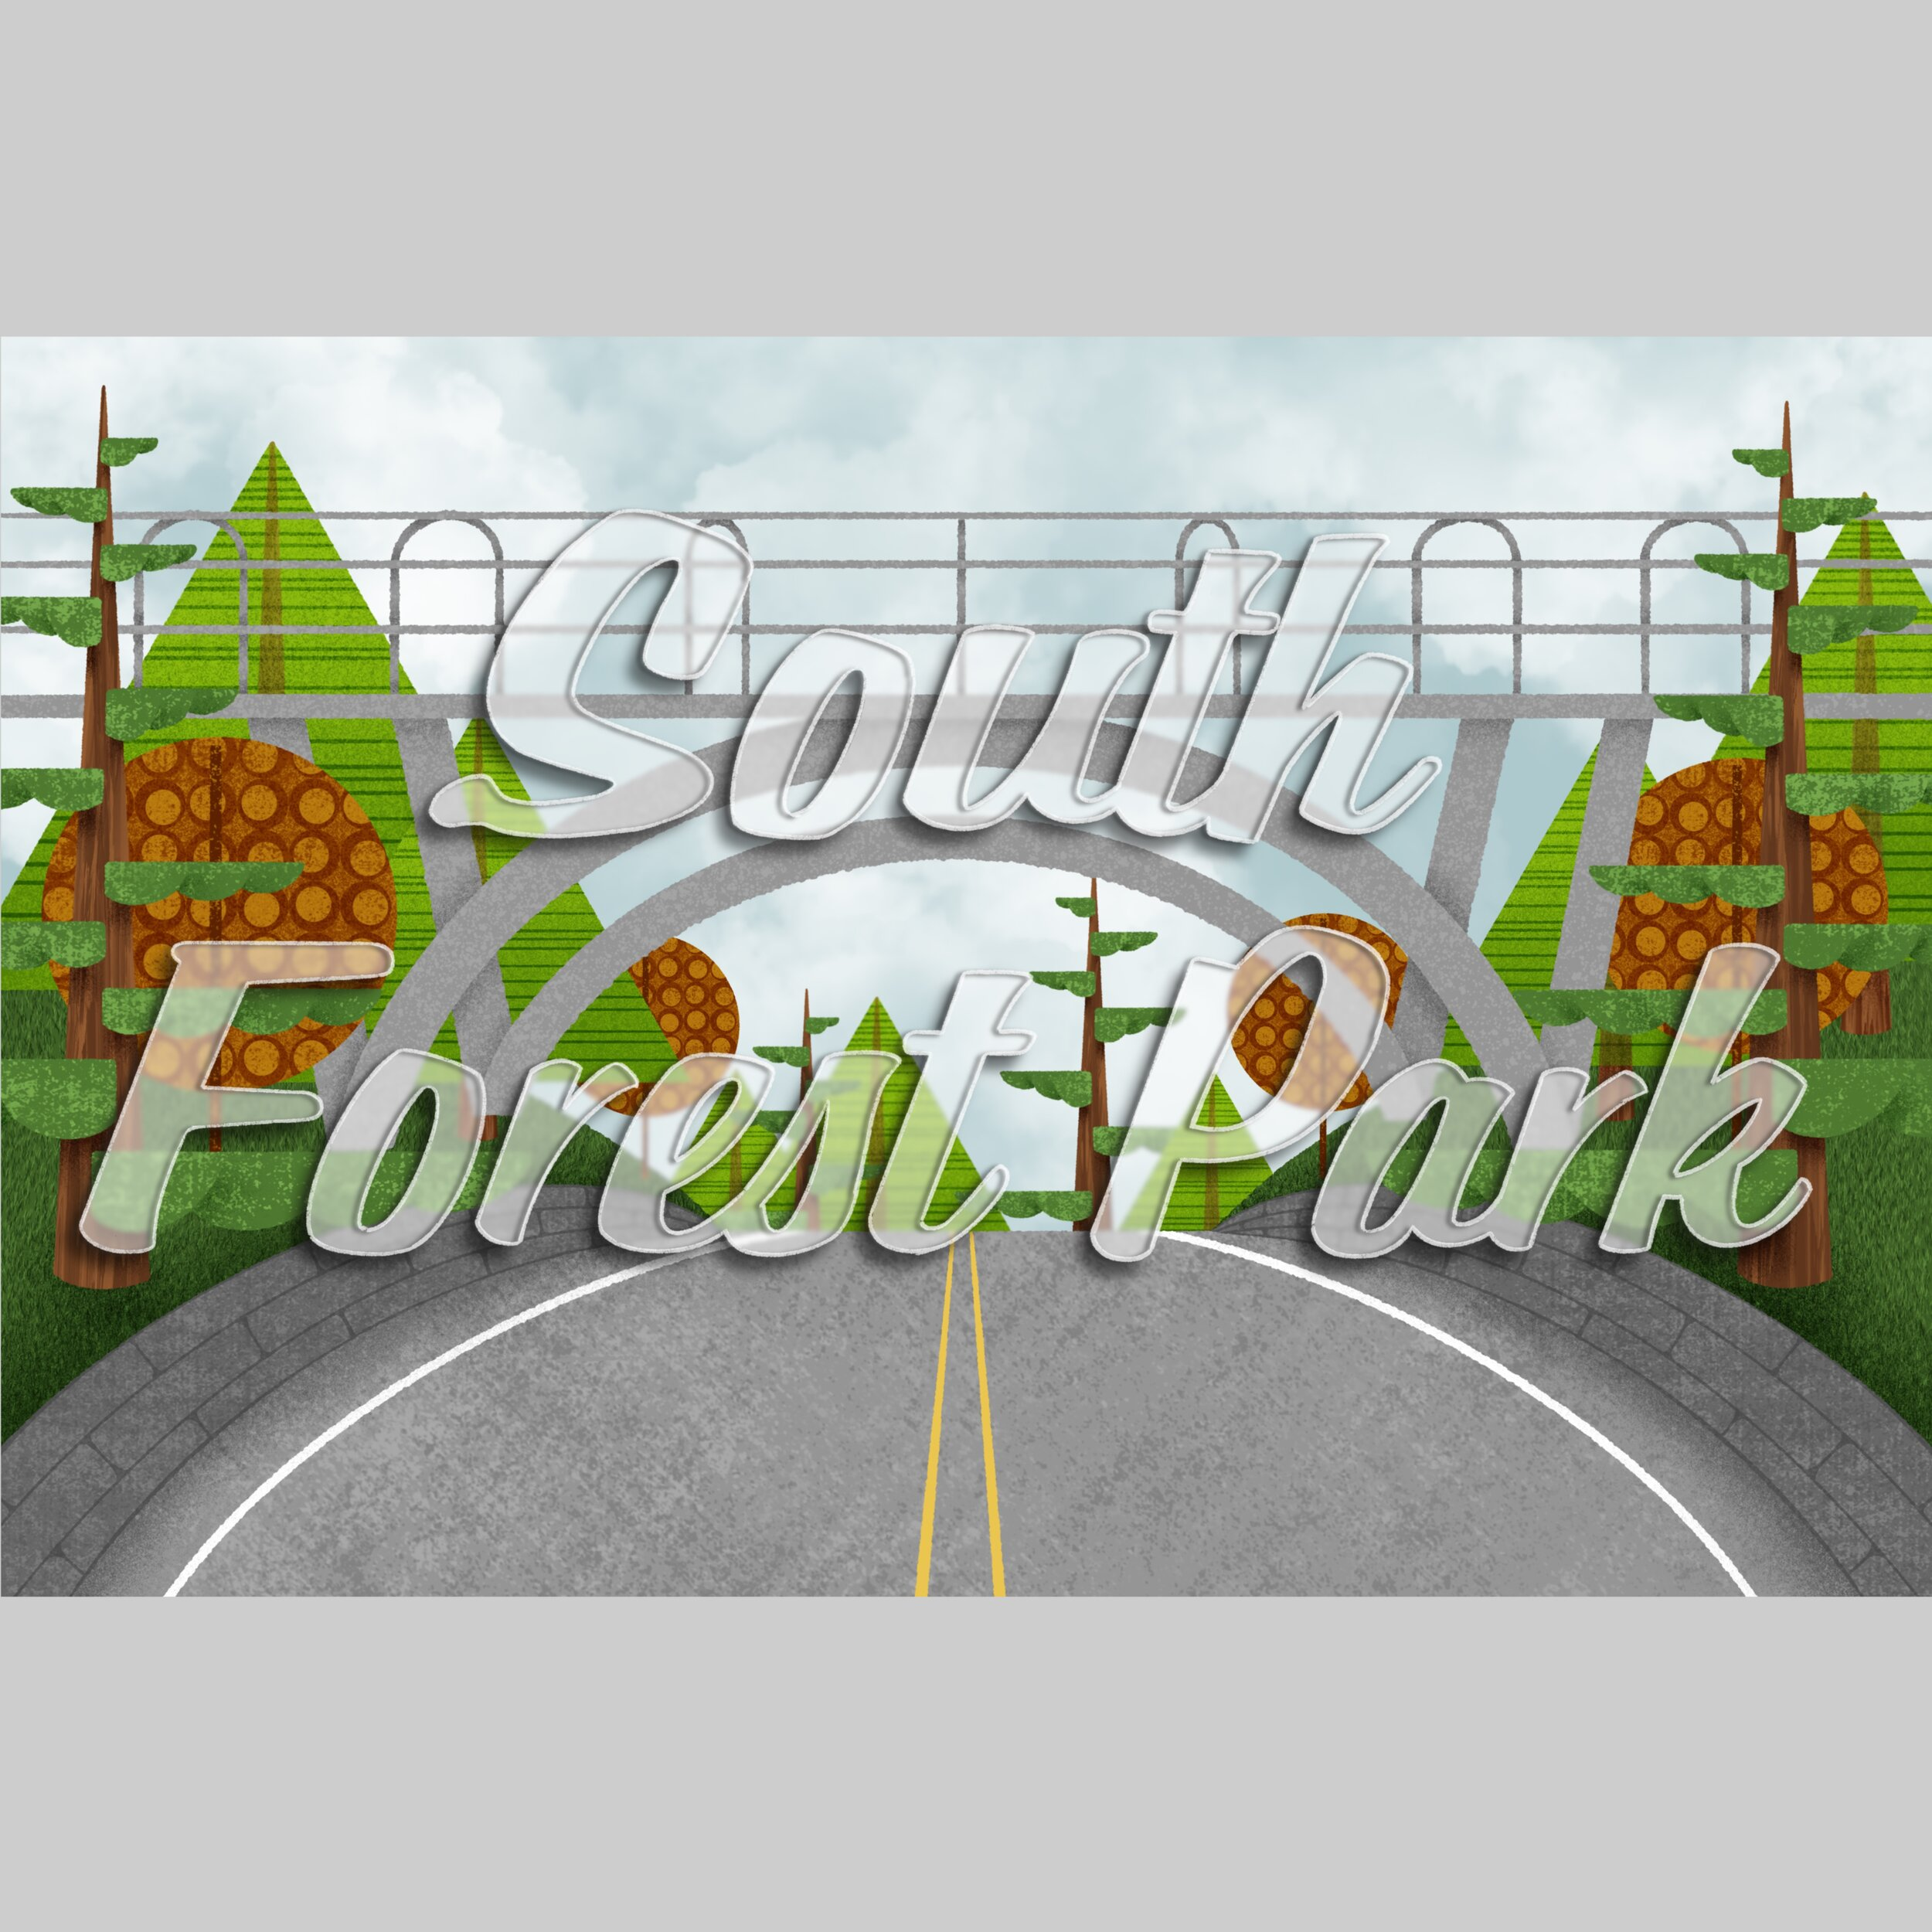 South_Forest_Park_Square.jpg